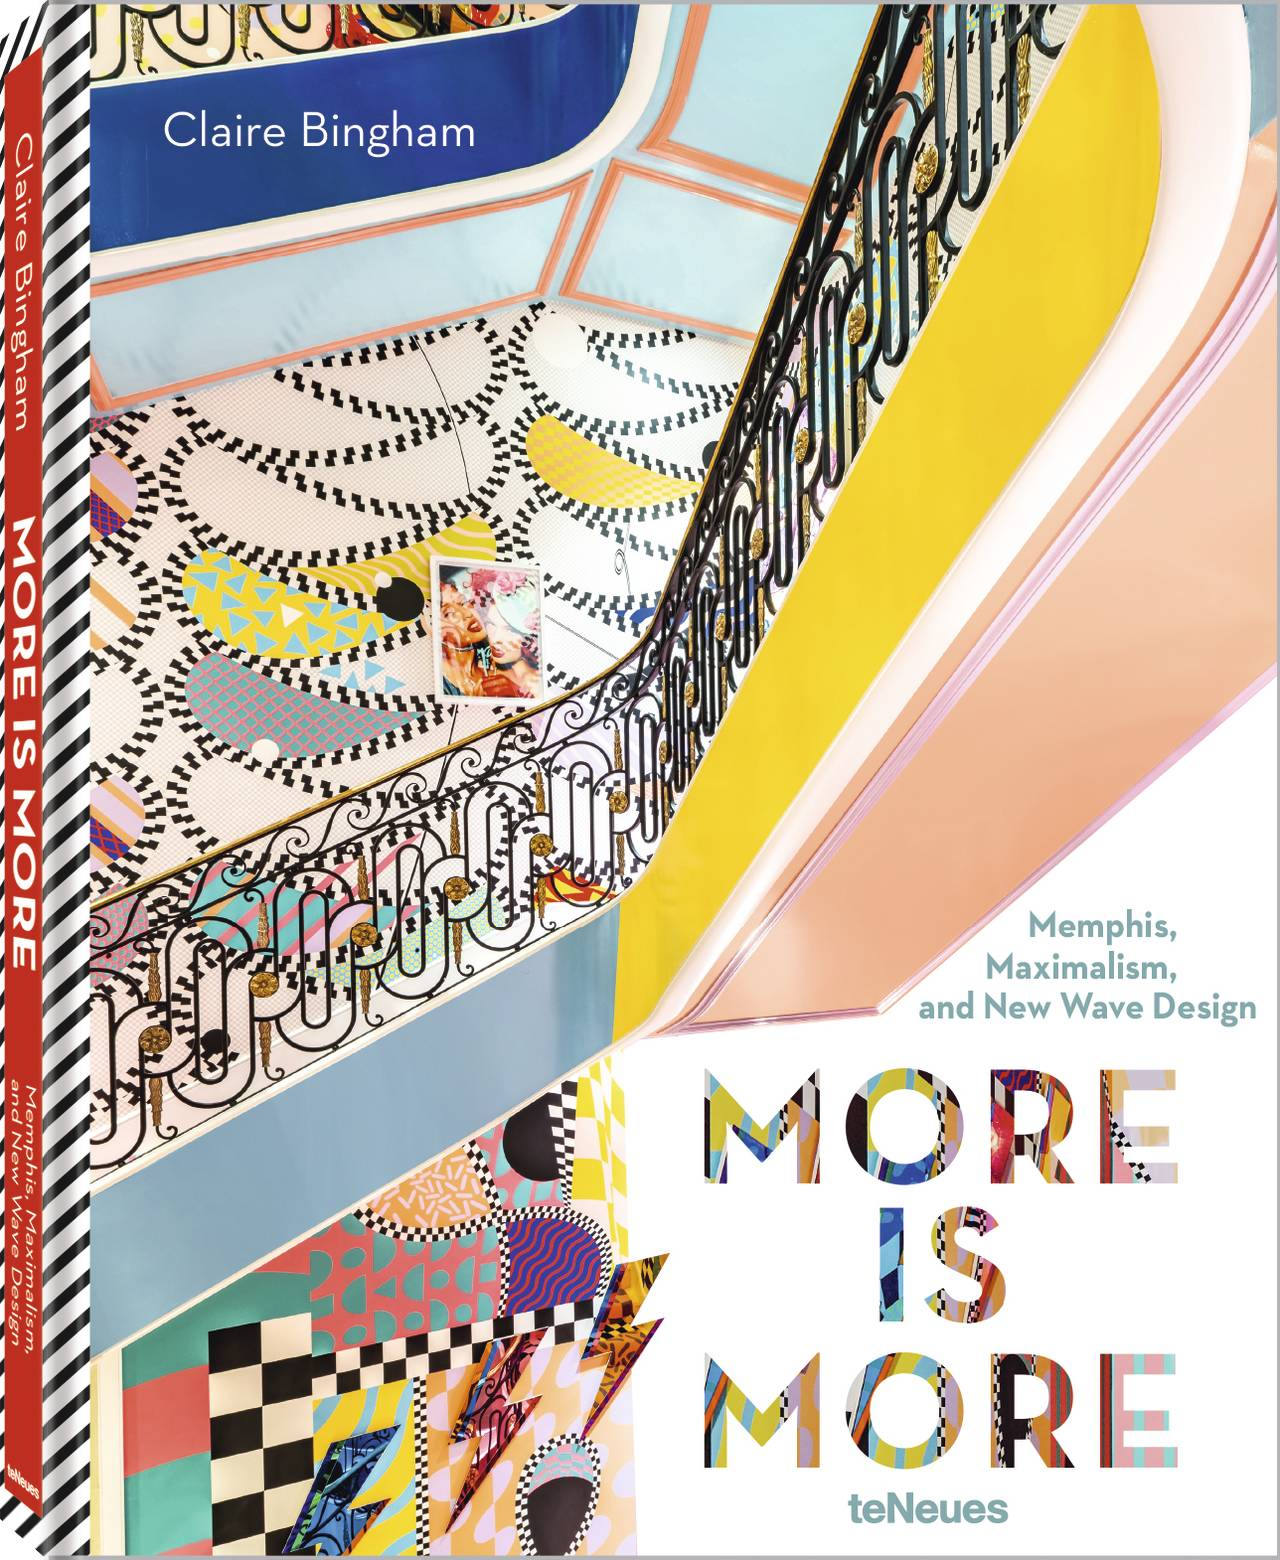 © More is More by Claire Bingham, to be published by teNeues in August 2019, www.teneues.com, TECHNICOLOR DREAMHOUSE, NEW YORK, USA, Photo © Courtesy of Sasha Bikoff Interior Design/© Nick Sargent